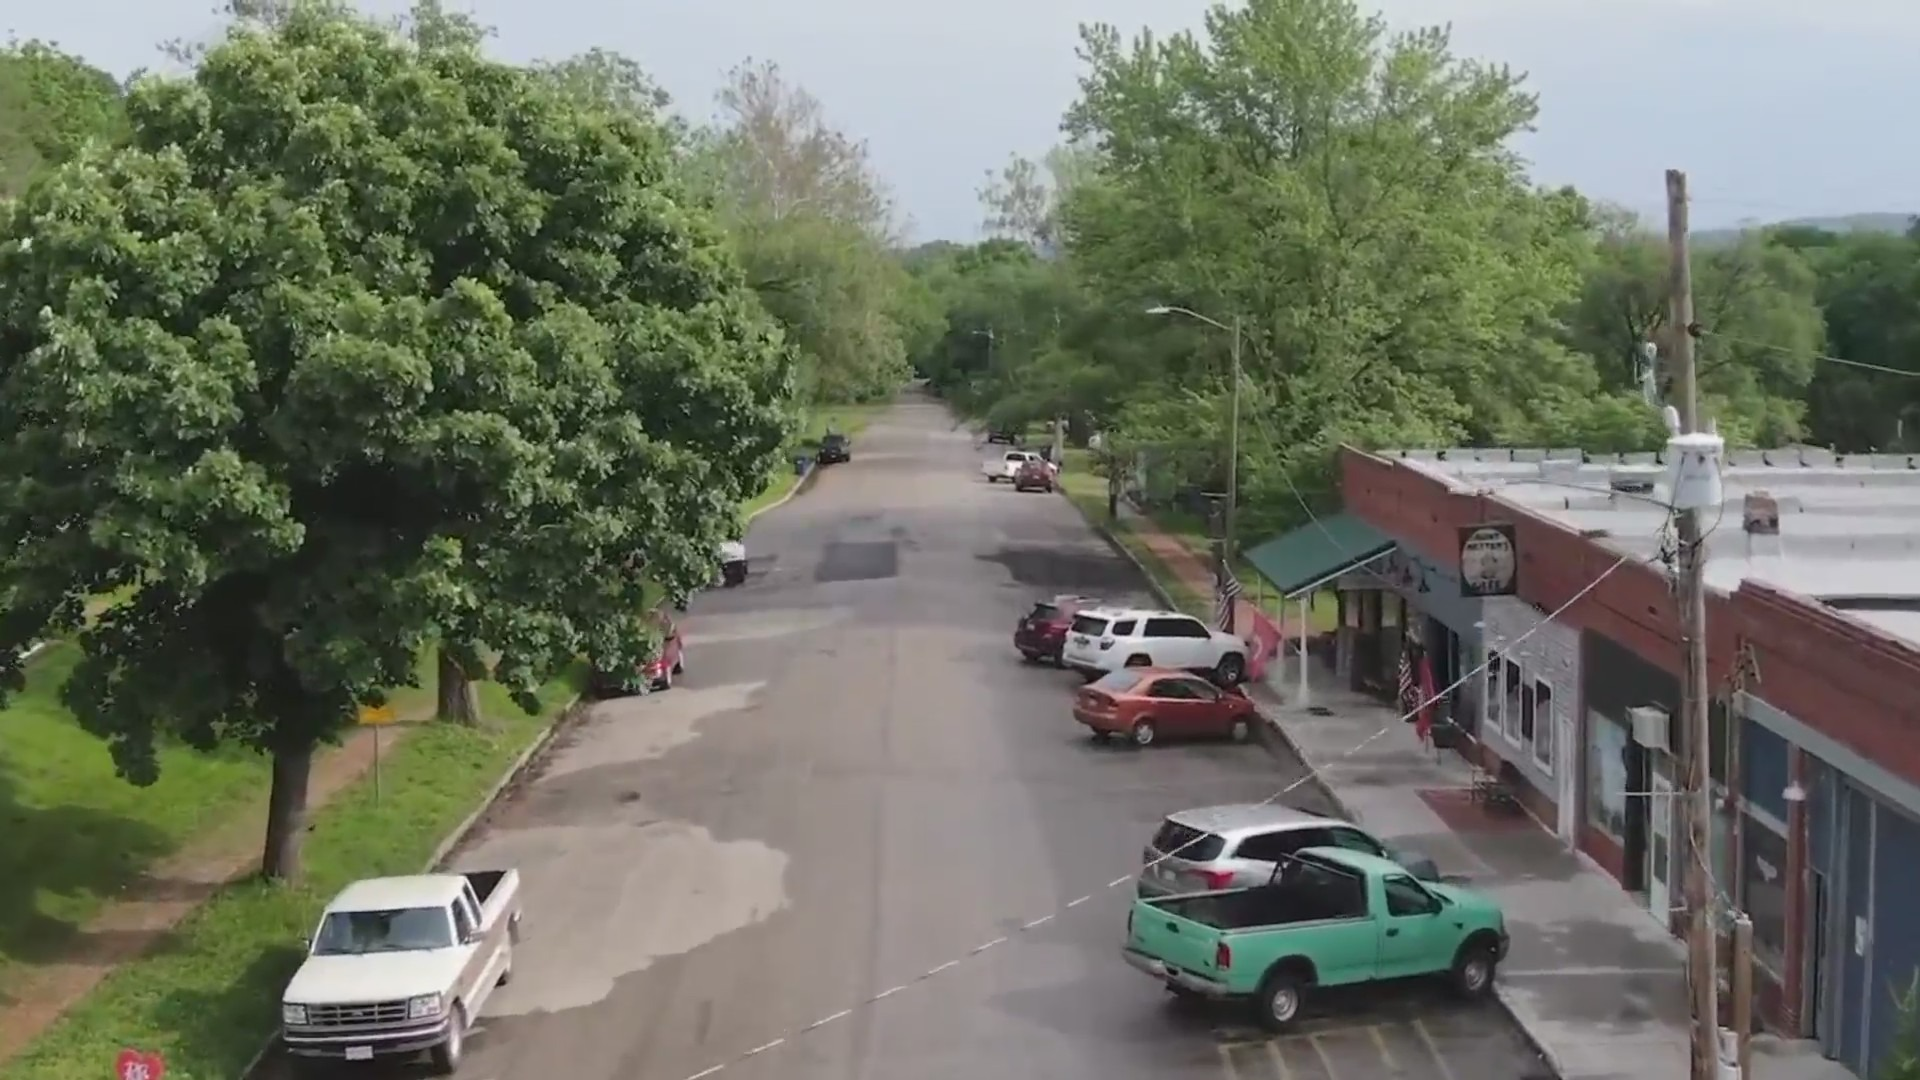 Drone picture of downtown Lecompton